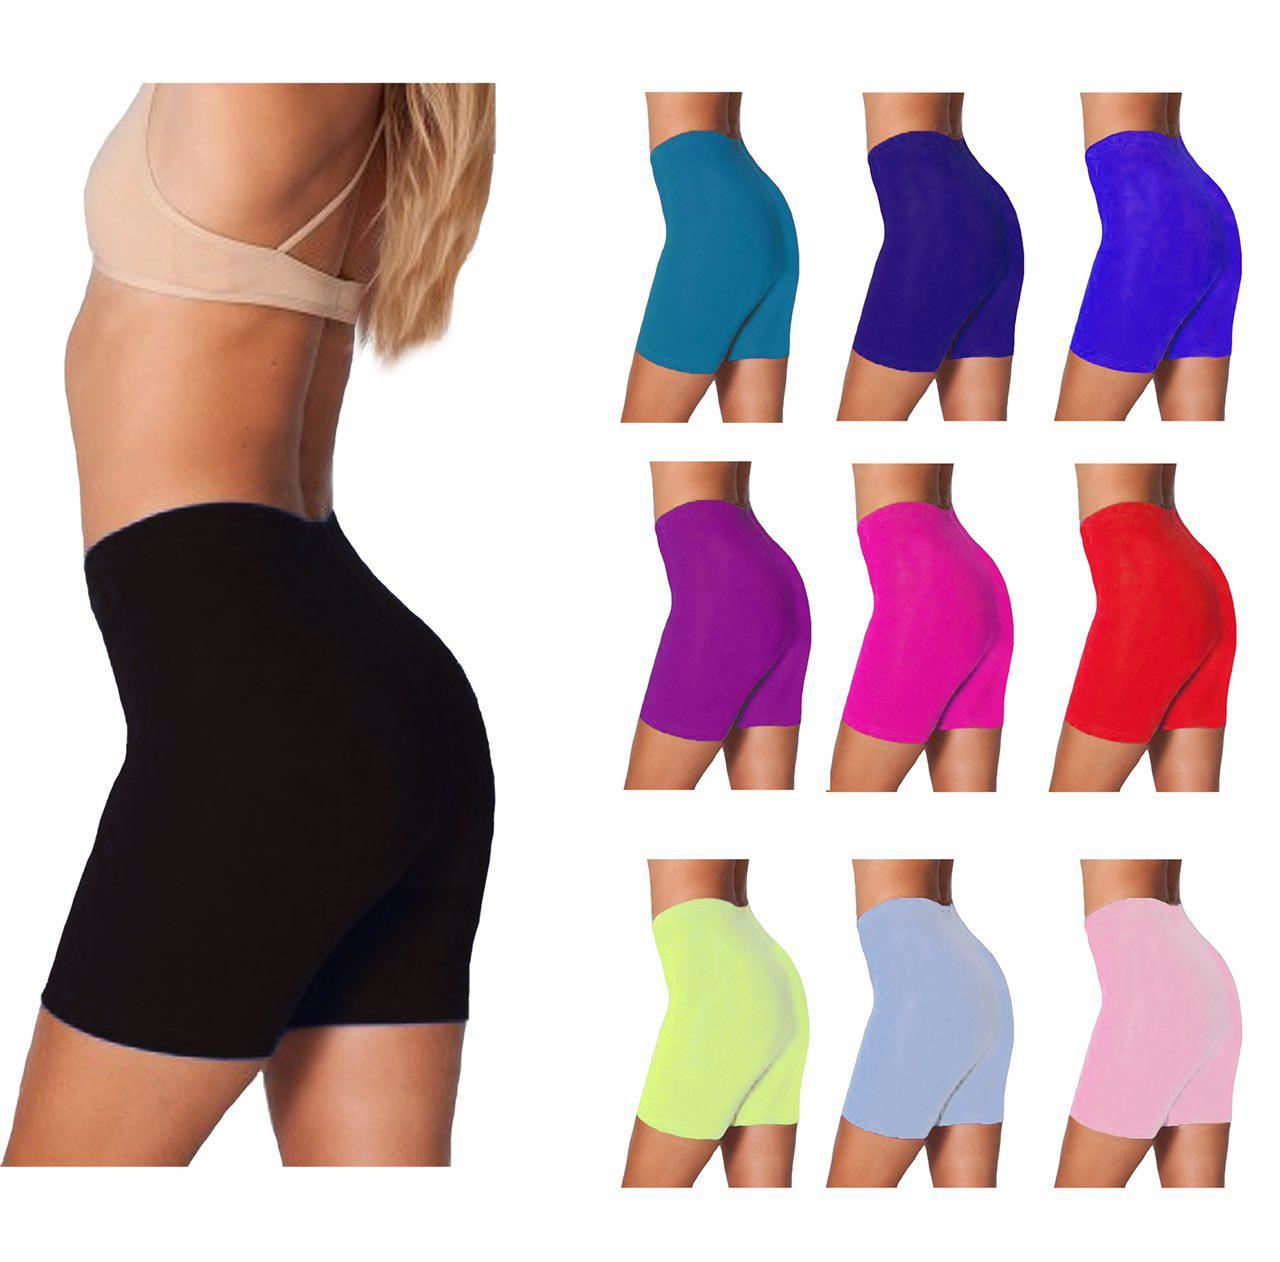 Ladies Womens Cycling Shorts Dancing Shorts Leggings Active Casual Shorts 8-22 Clothing, Shoes & Accessories